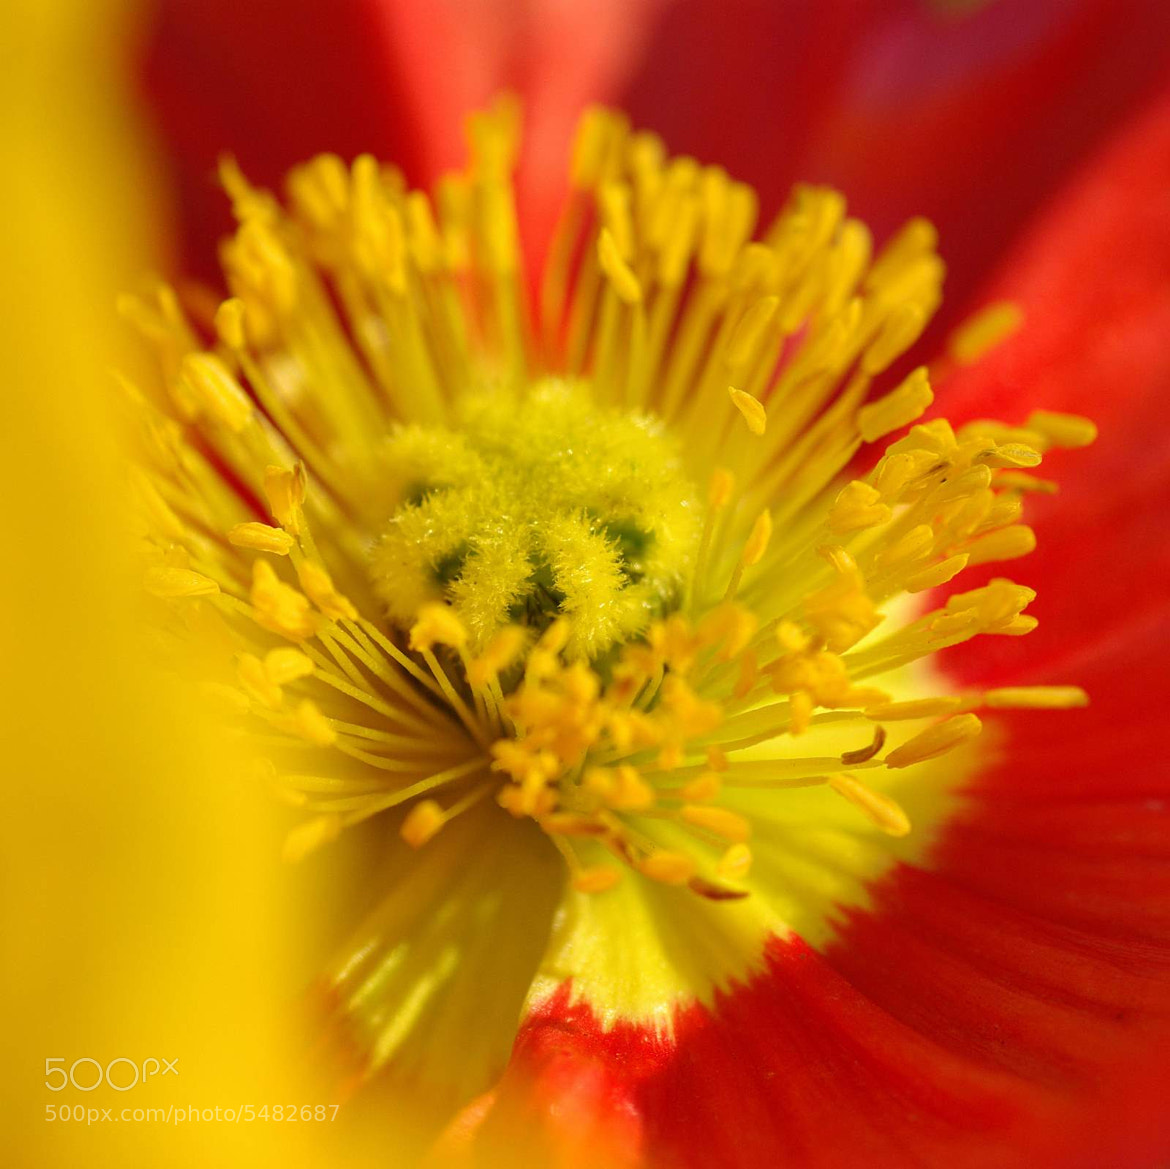 Photograph Flower 1 by Tushar B on 500px